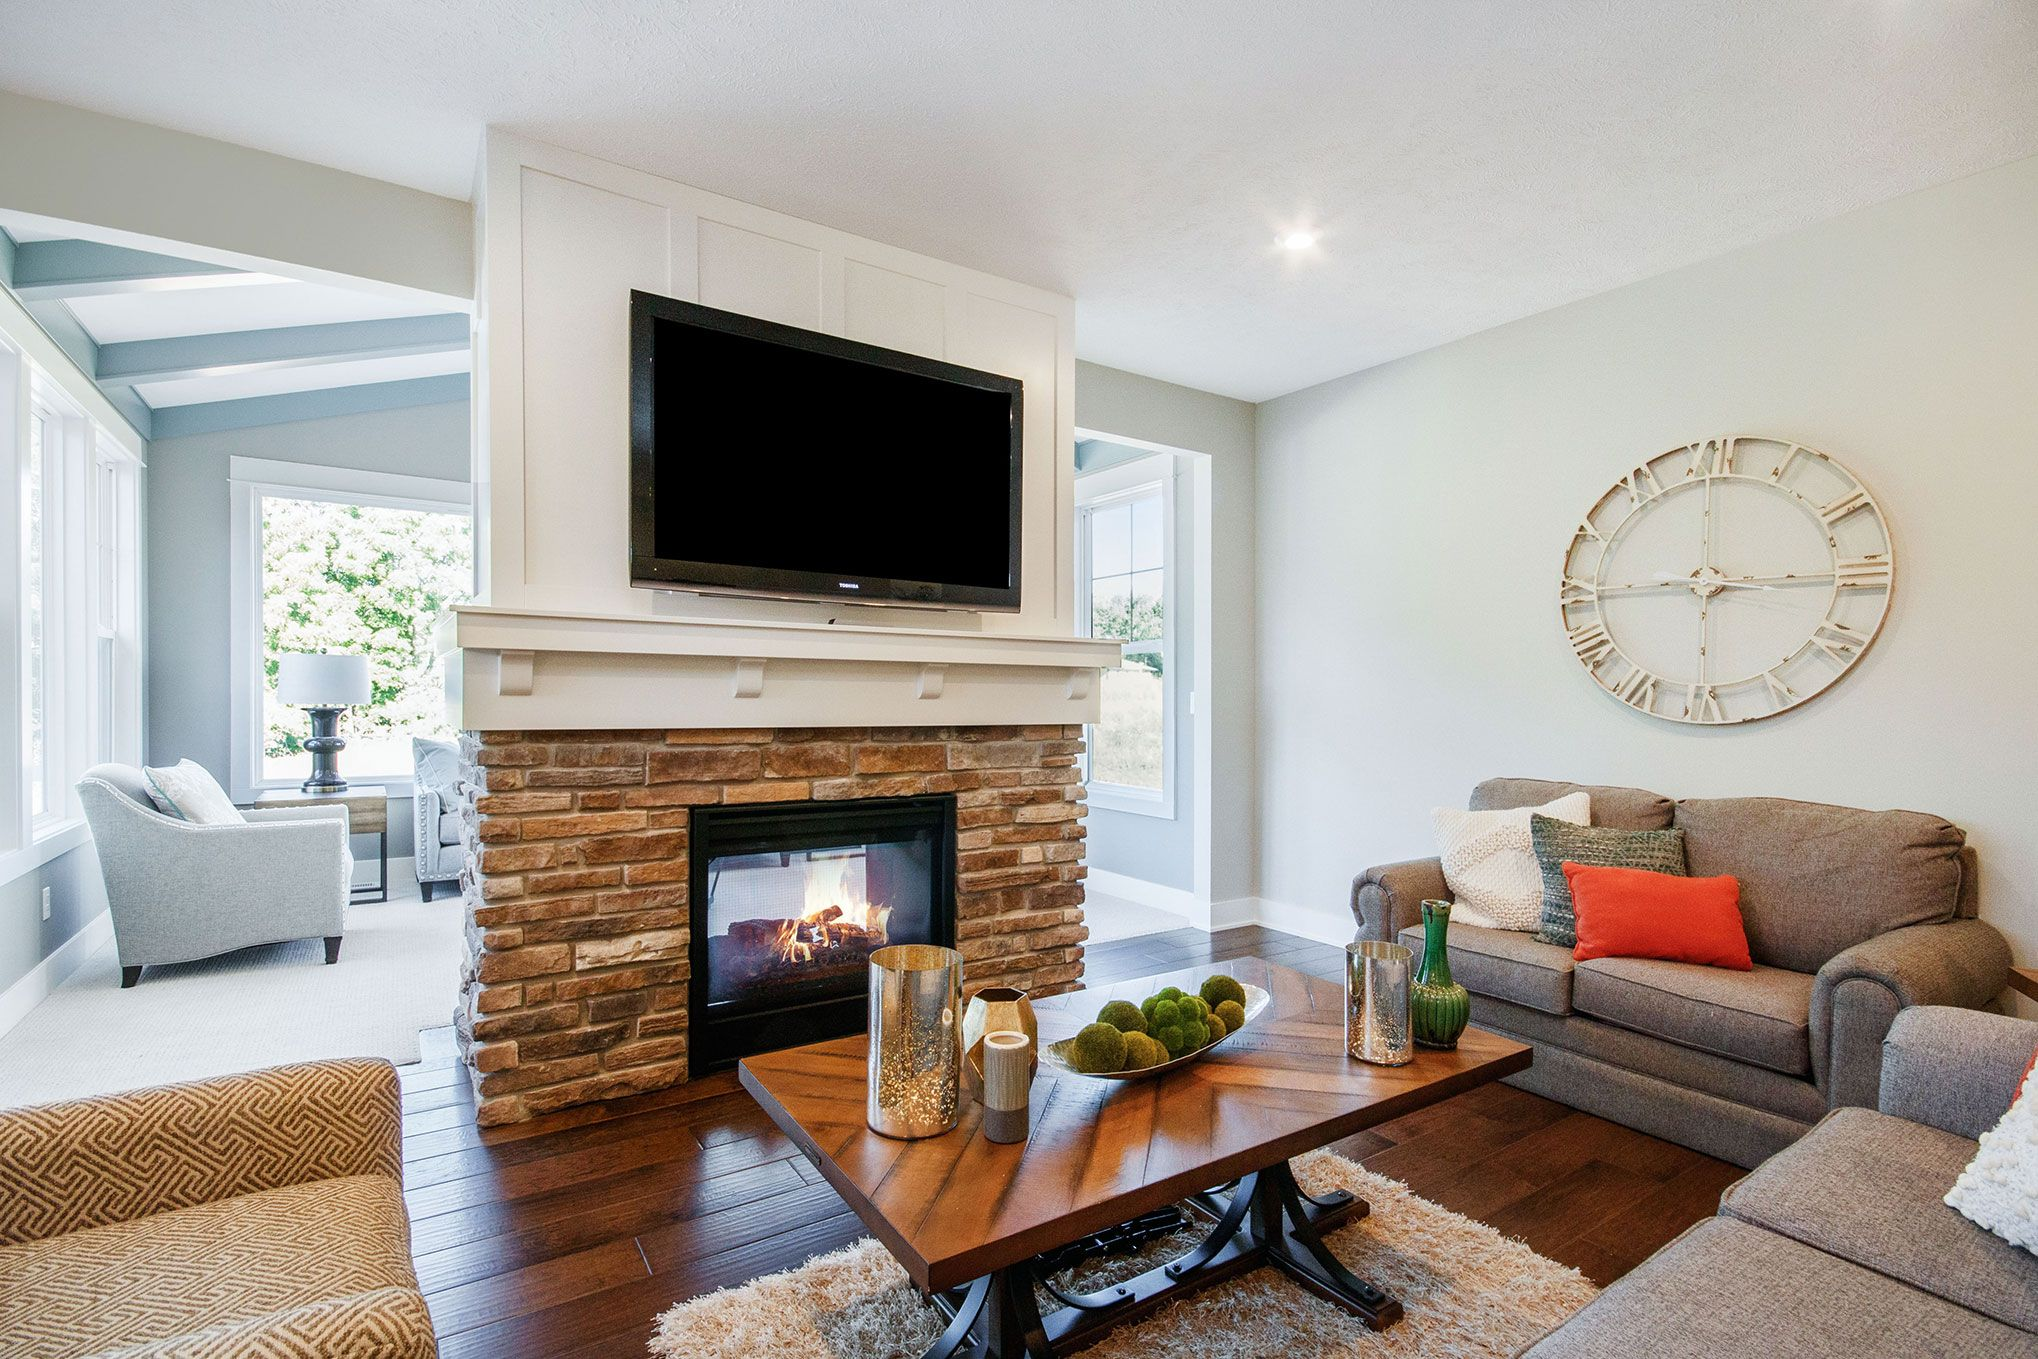 Living Area featured in The Willow ll By Eastbrook Homes Inc. in Grand Rapids, MI